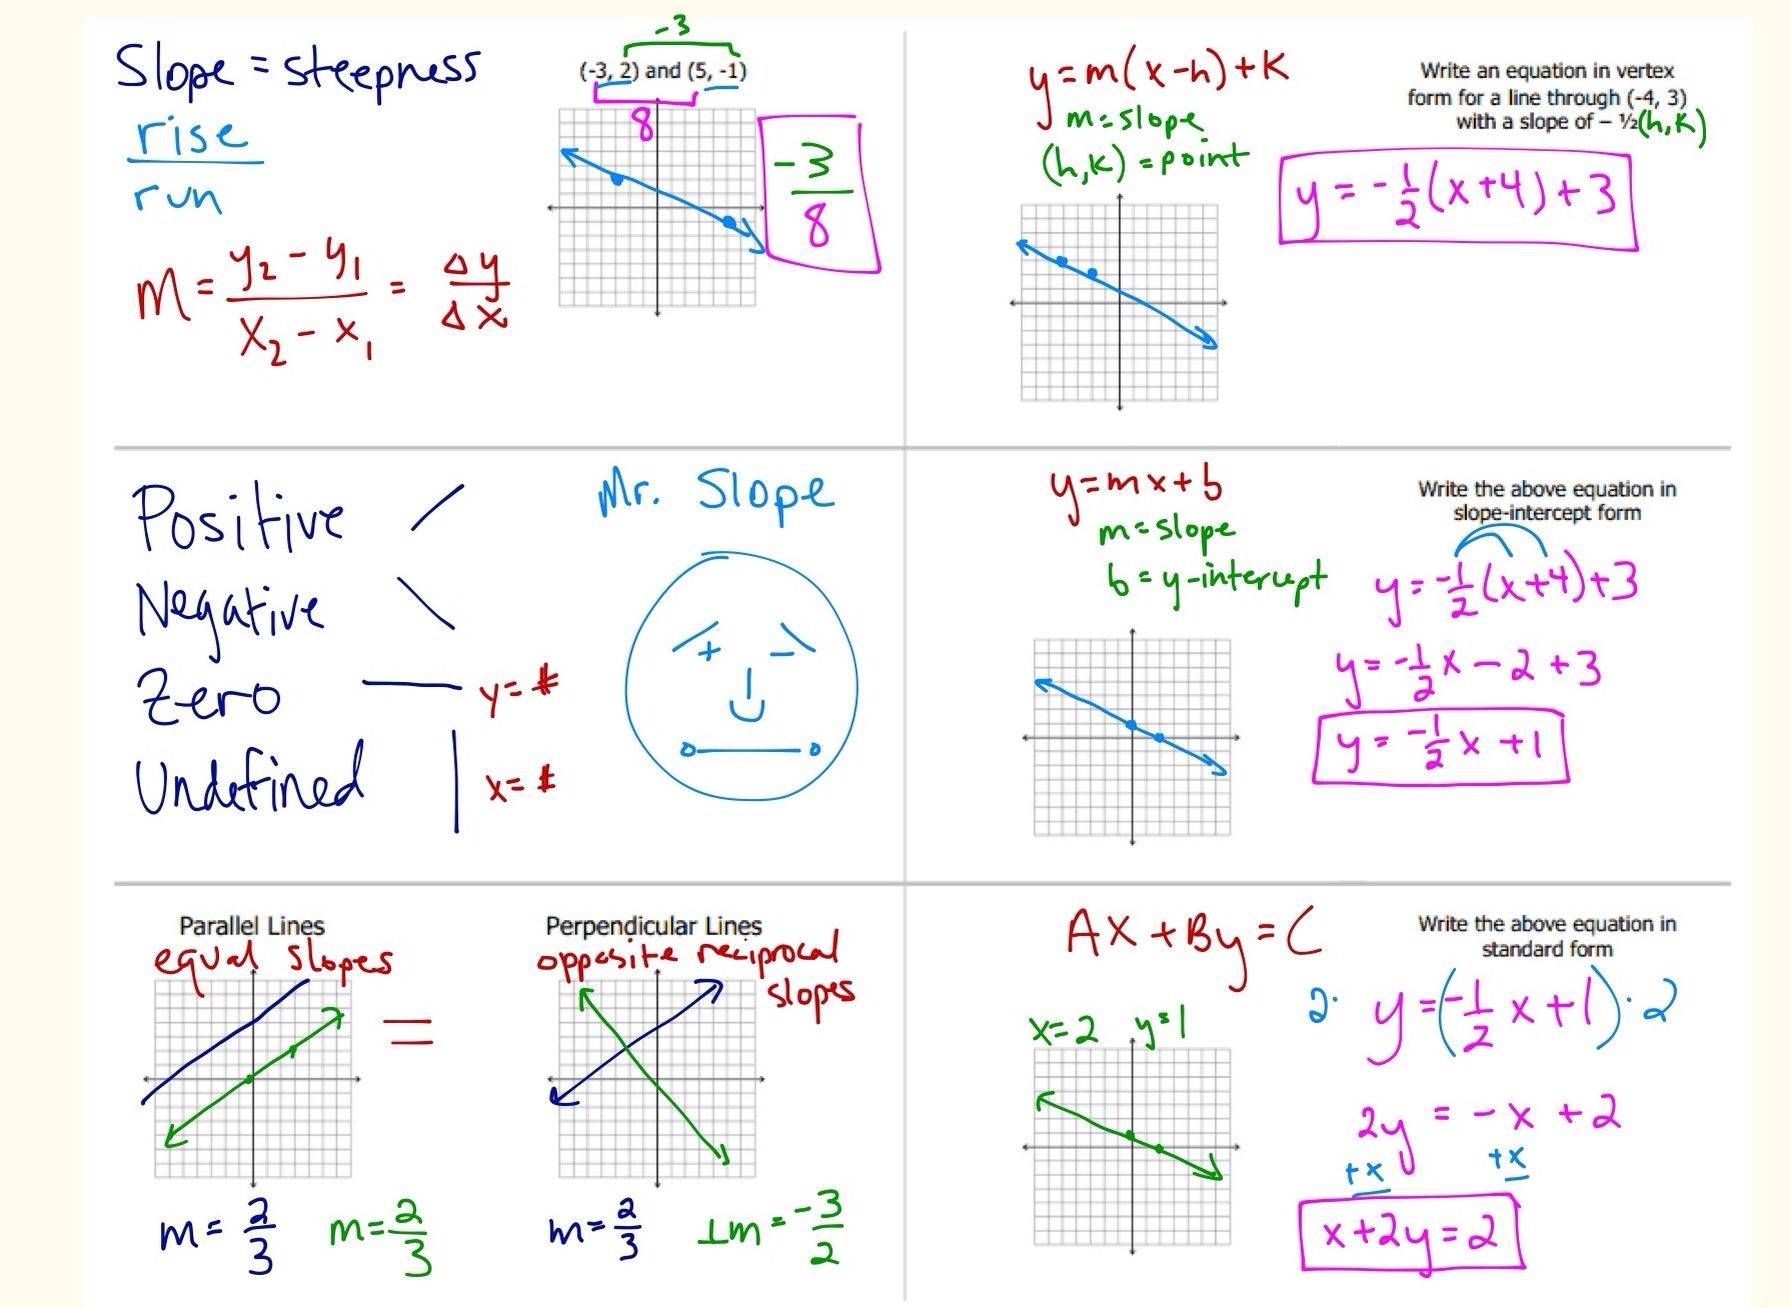 Linear foldables look here at mr slope prealgebra ideas linear foldables look here at mr slope falaconquin